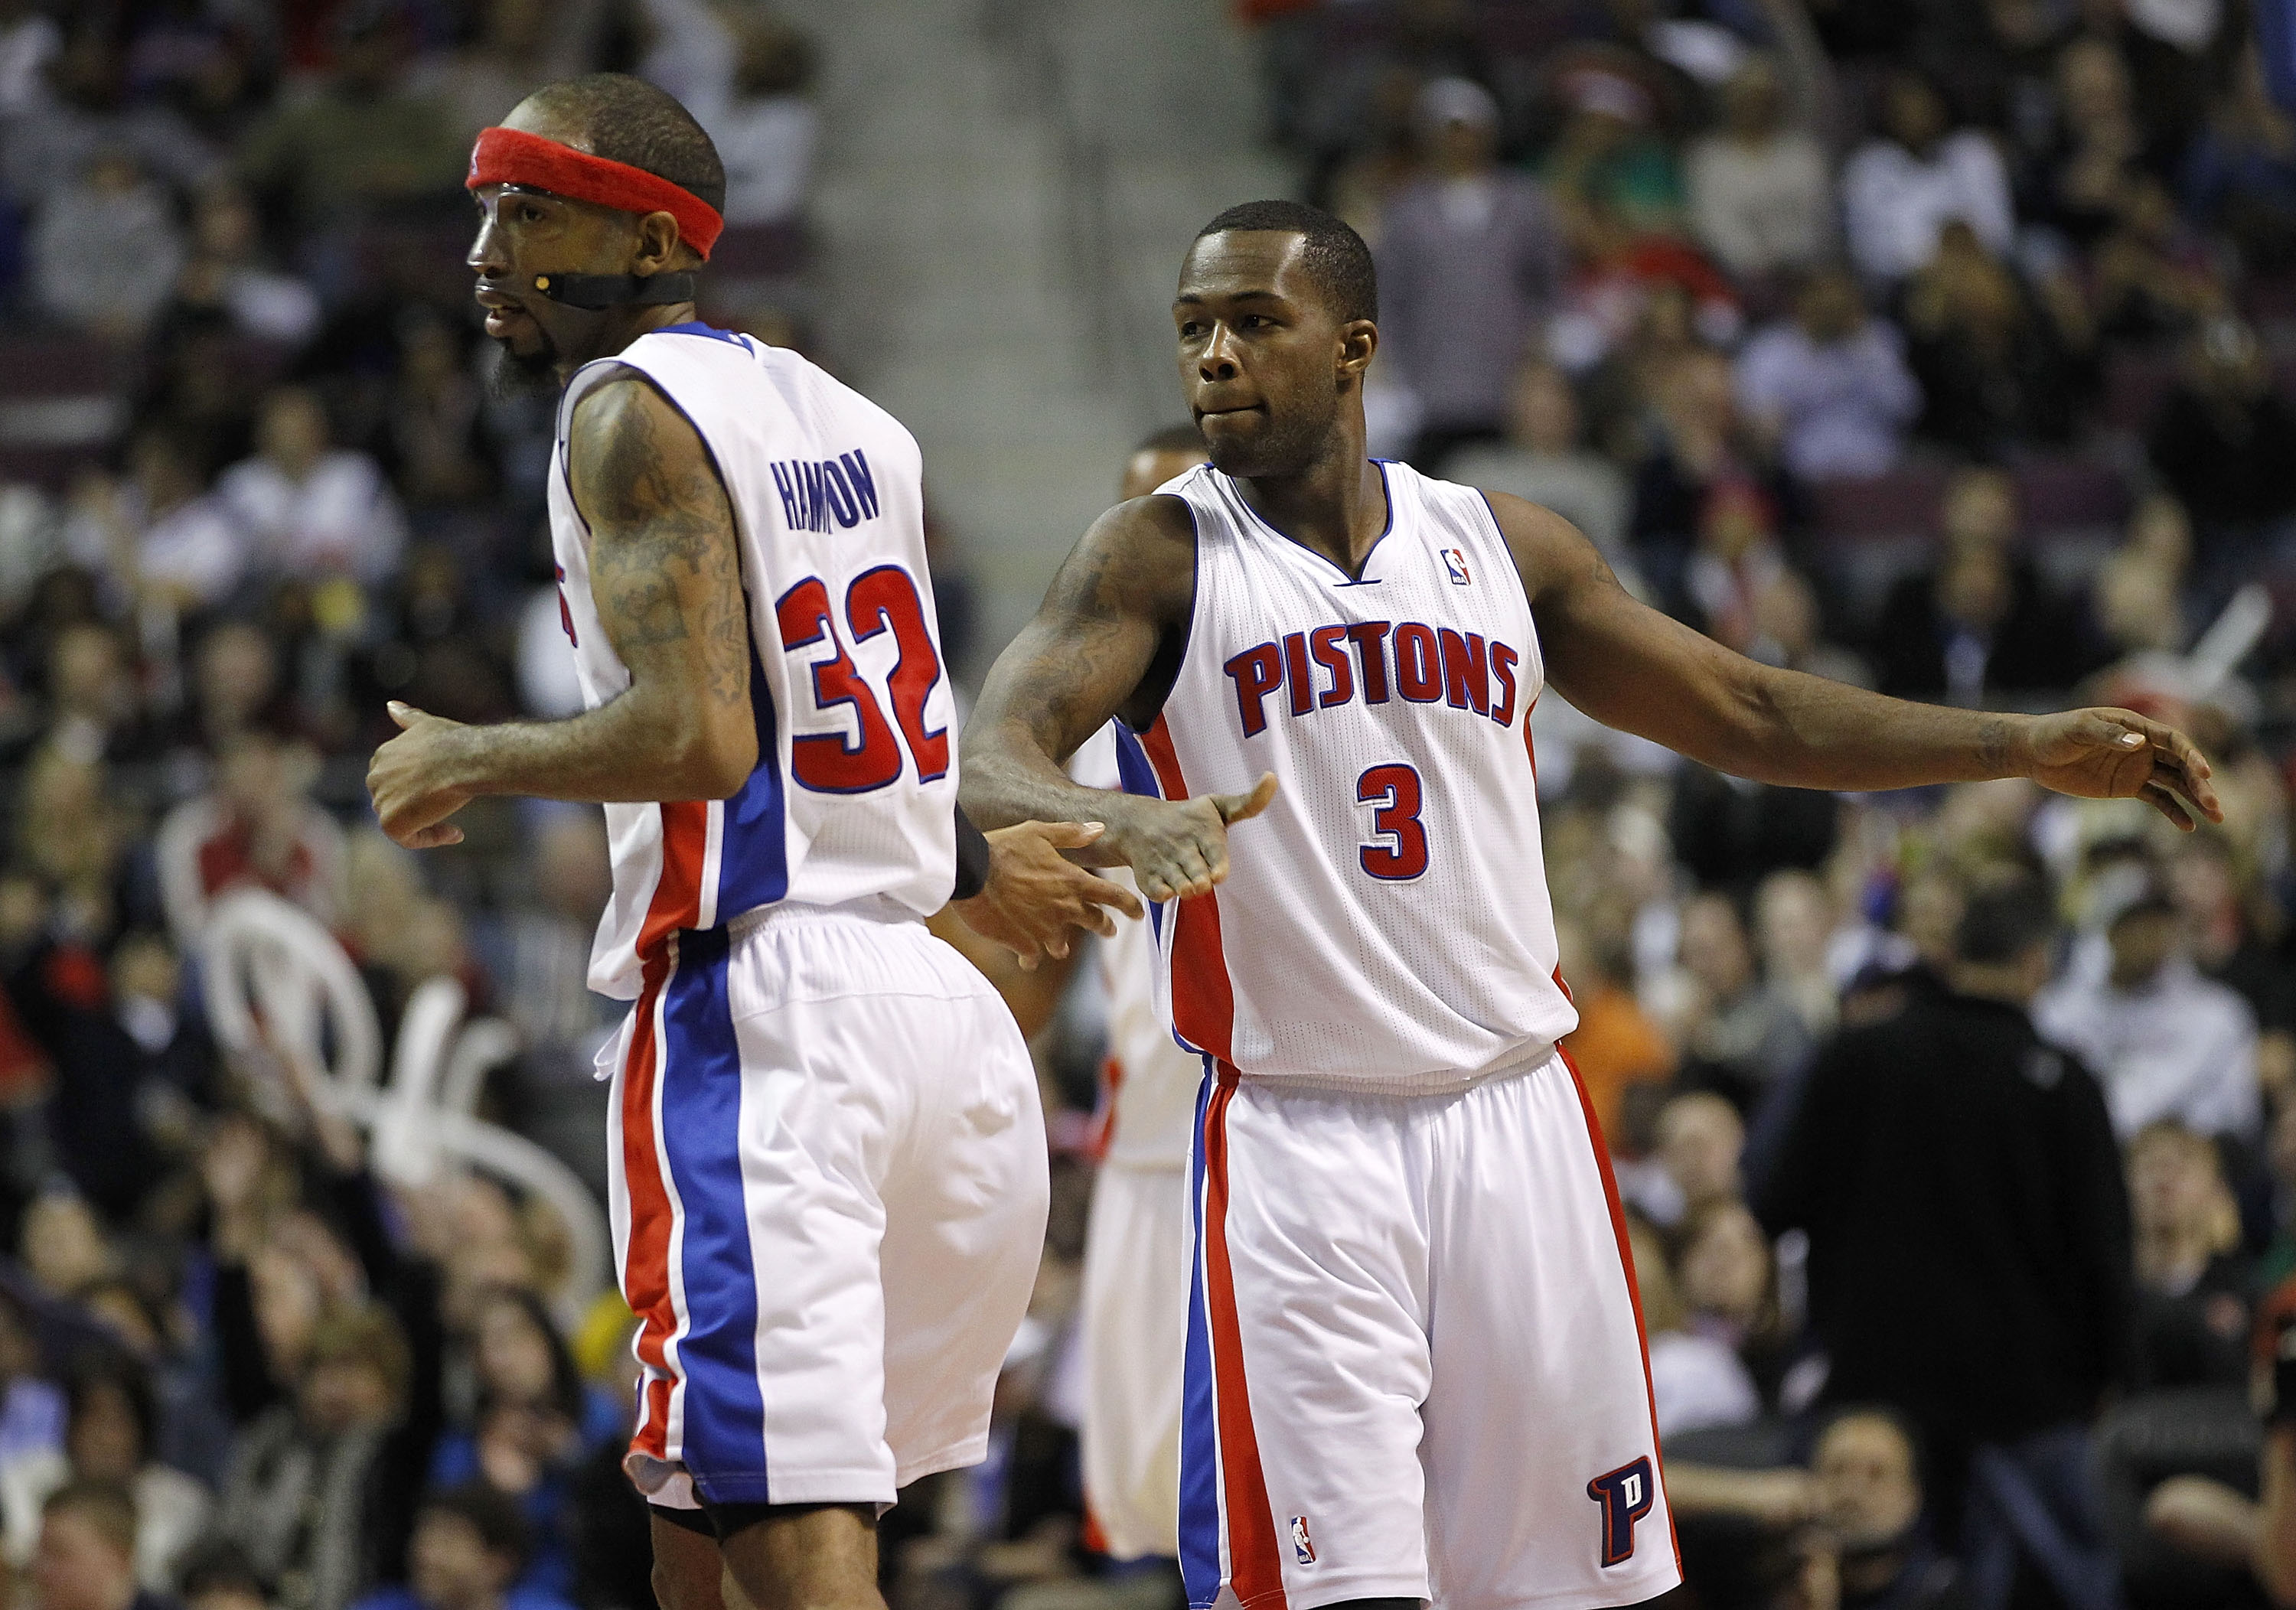 AUBURN HILLS, MI - MARCH 23:  Richard Hamilton #32 of the Detroit Pistons celebrates a three-point basket with teammate Rodney Stuckey #3 while playing the Miami Heat at The Palace of Auburn Hills on March 23, 2011 in Auburn Hills, Michigan. Miami won the